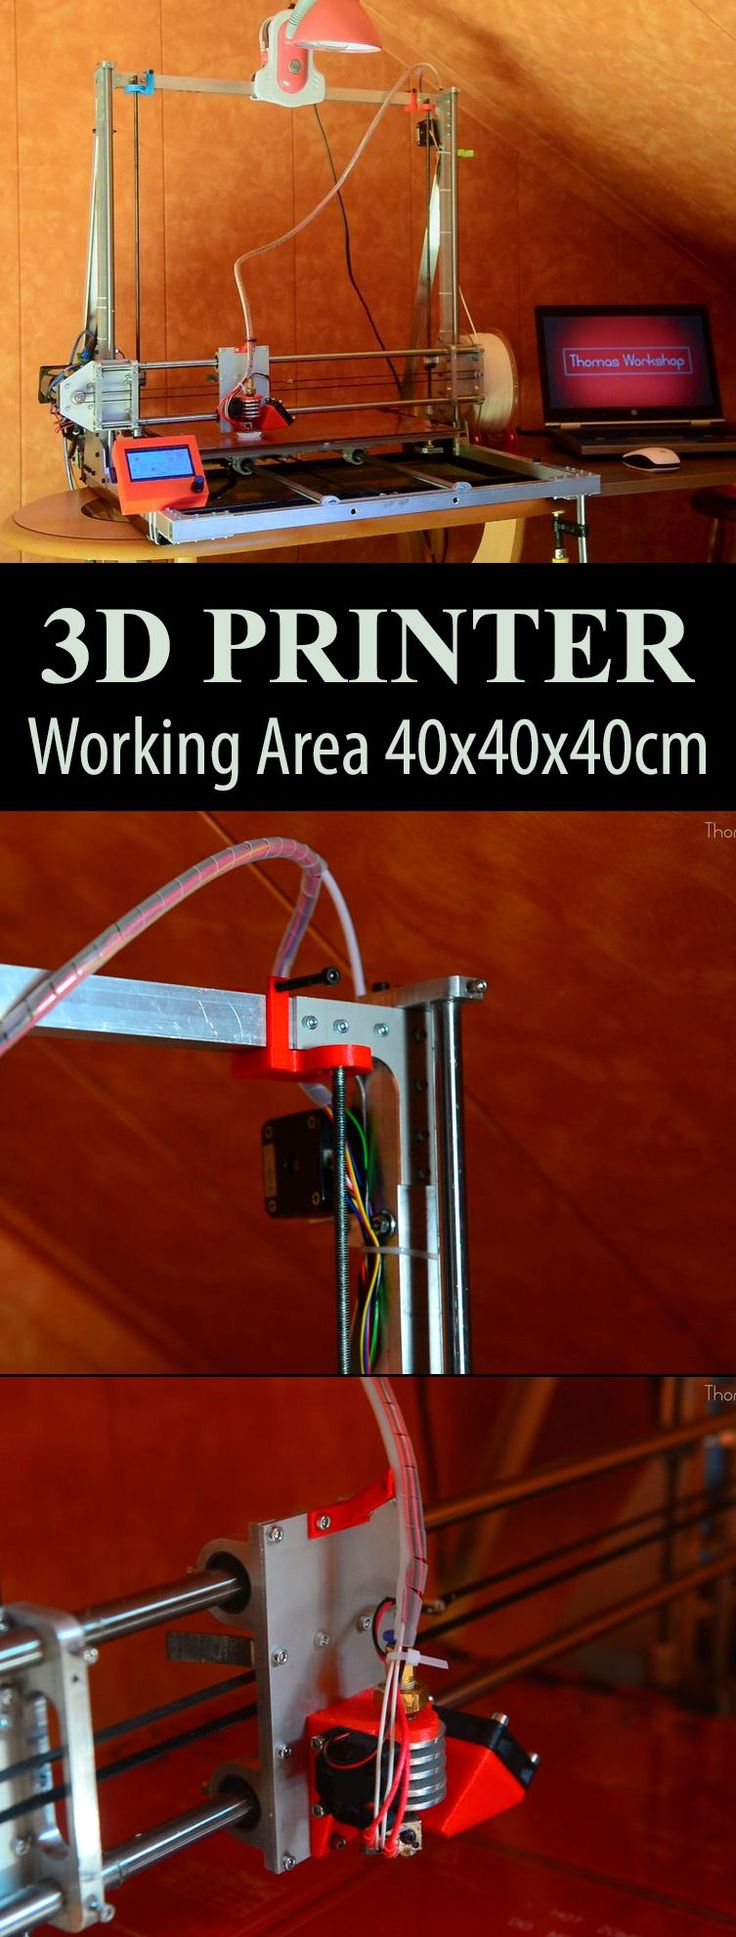 24 Best 3d Printer Images On Pinterest Workshop Bricolage And Cnc Circuit Bent Modified Toy Festival Ponoko Working Area 40x40x40cm